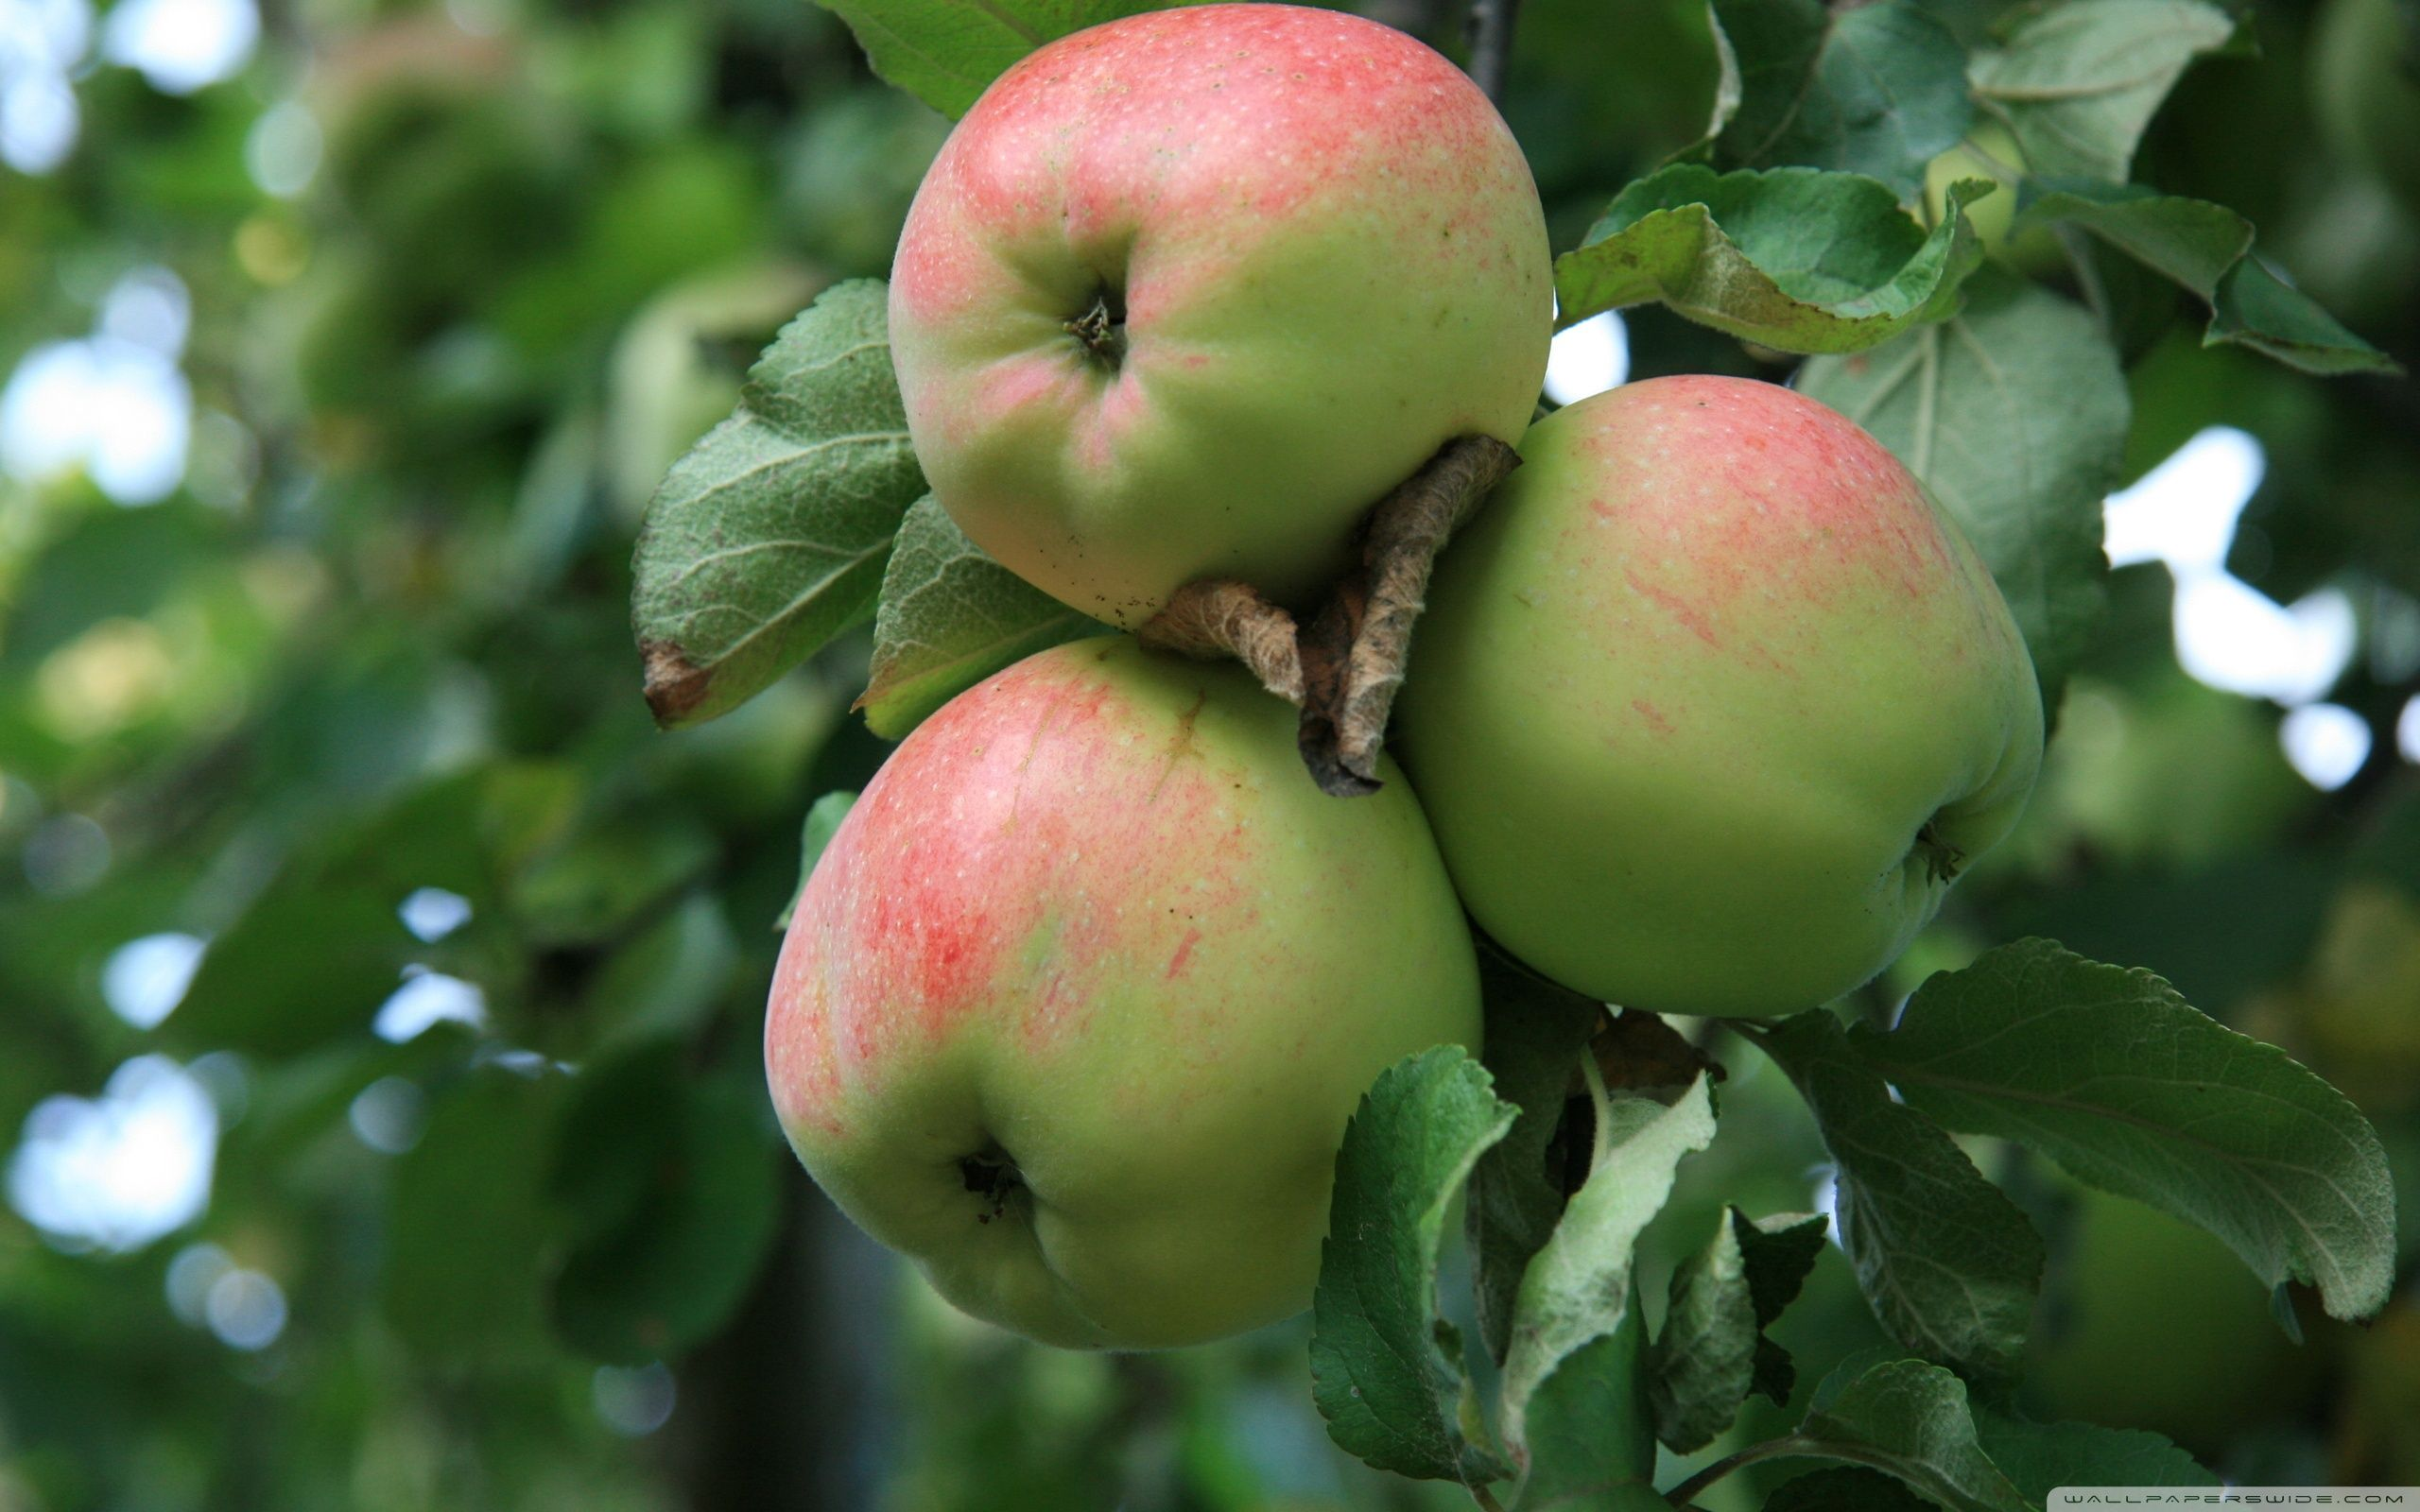 Apple-Tree Wallpapers, 43 Apple-Tree Images and Wallpapers for Mac ... for Green Apple Fruit Wallpaper  110yll